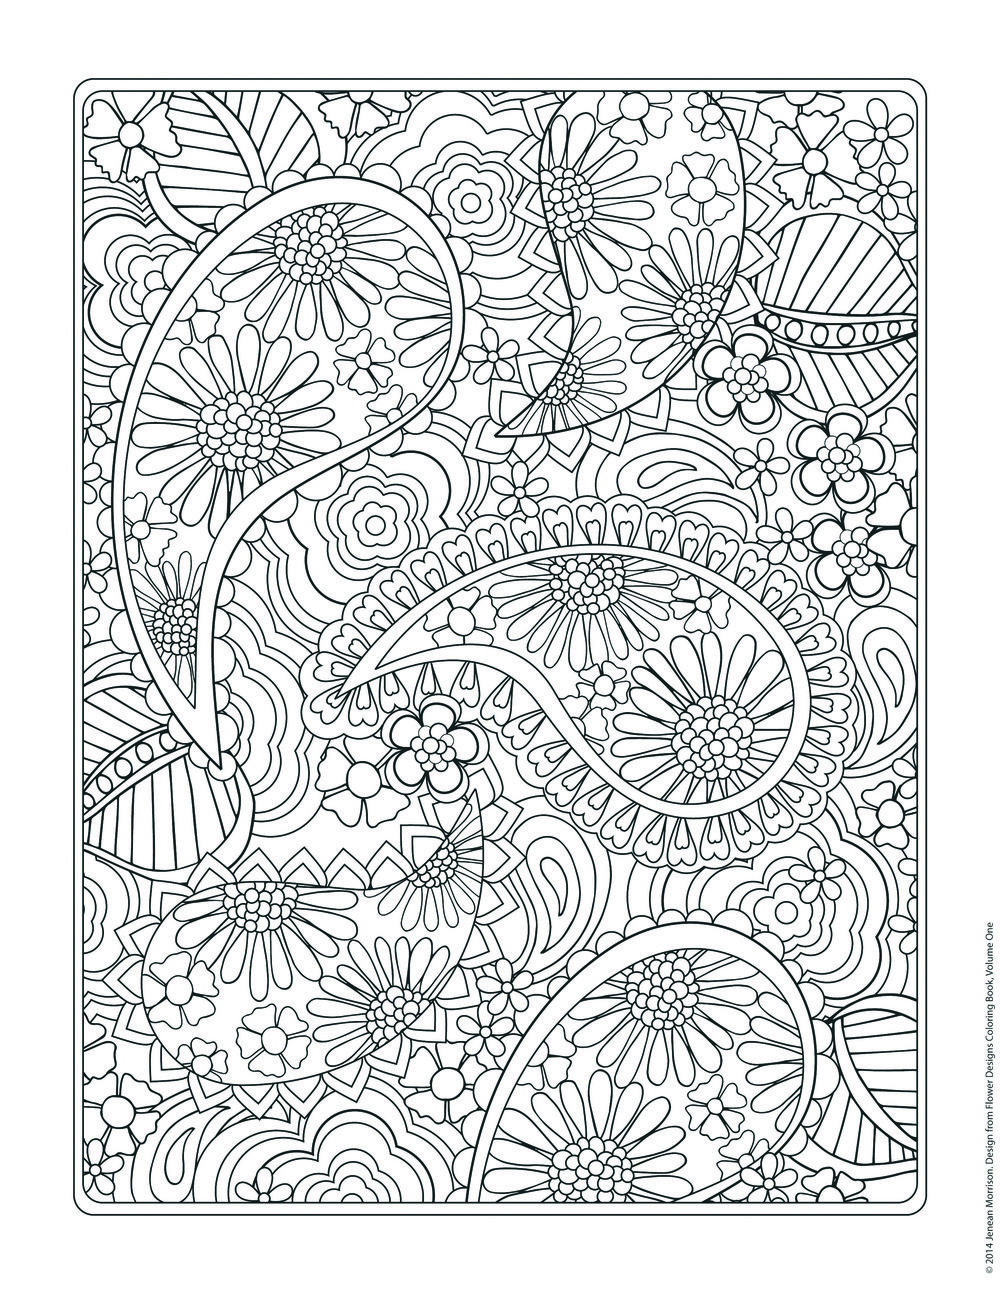 flower designs coloring book - Pattern Coloring Books